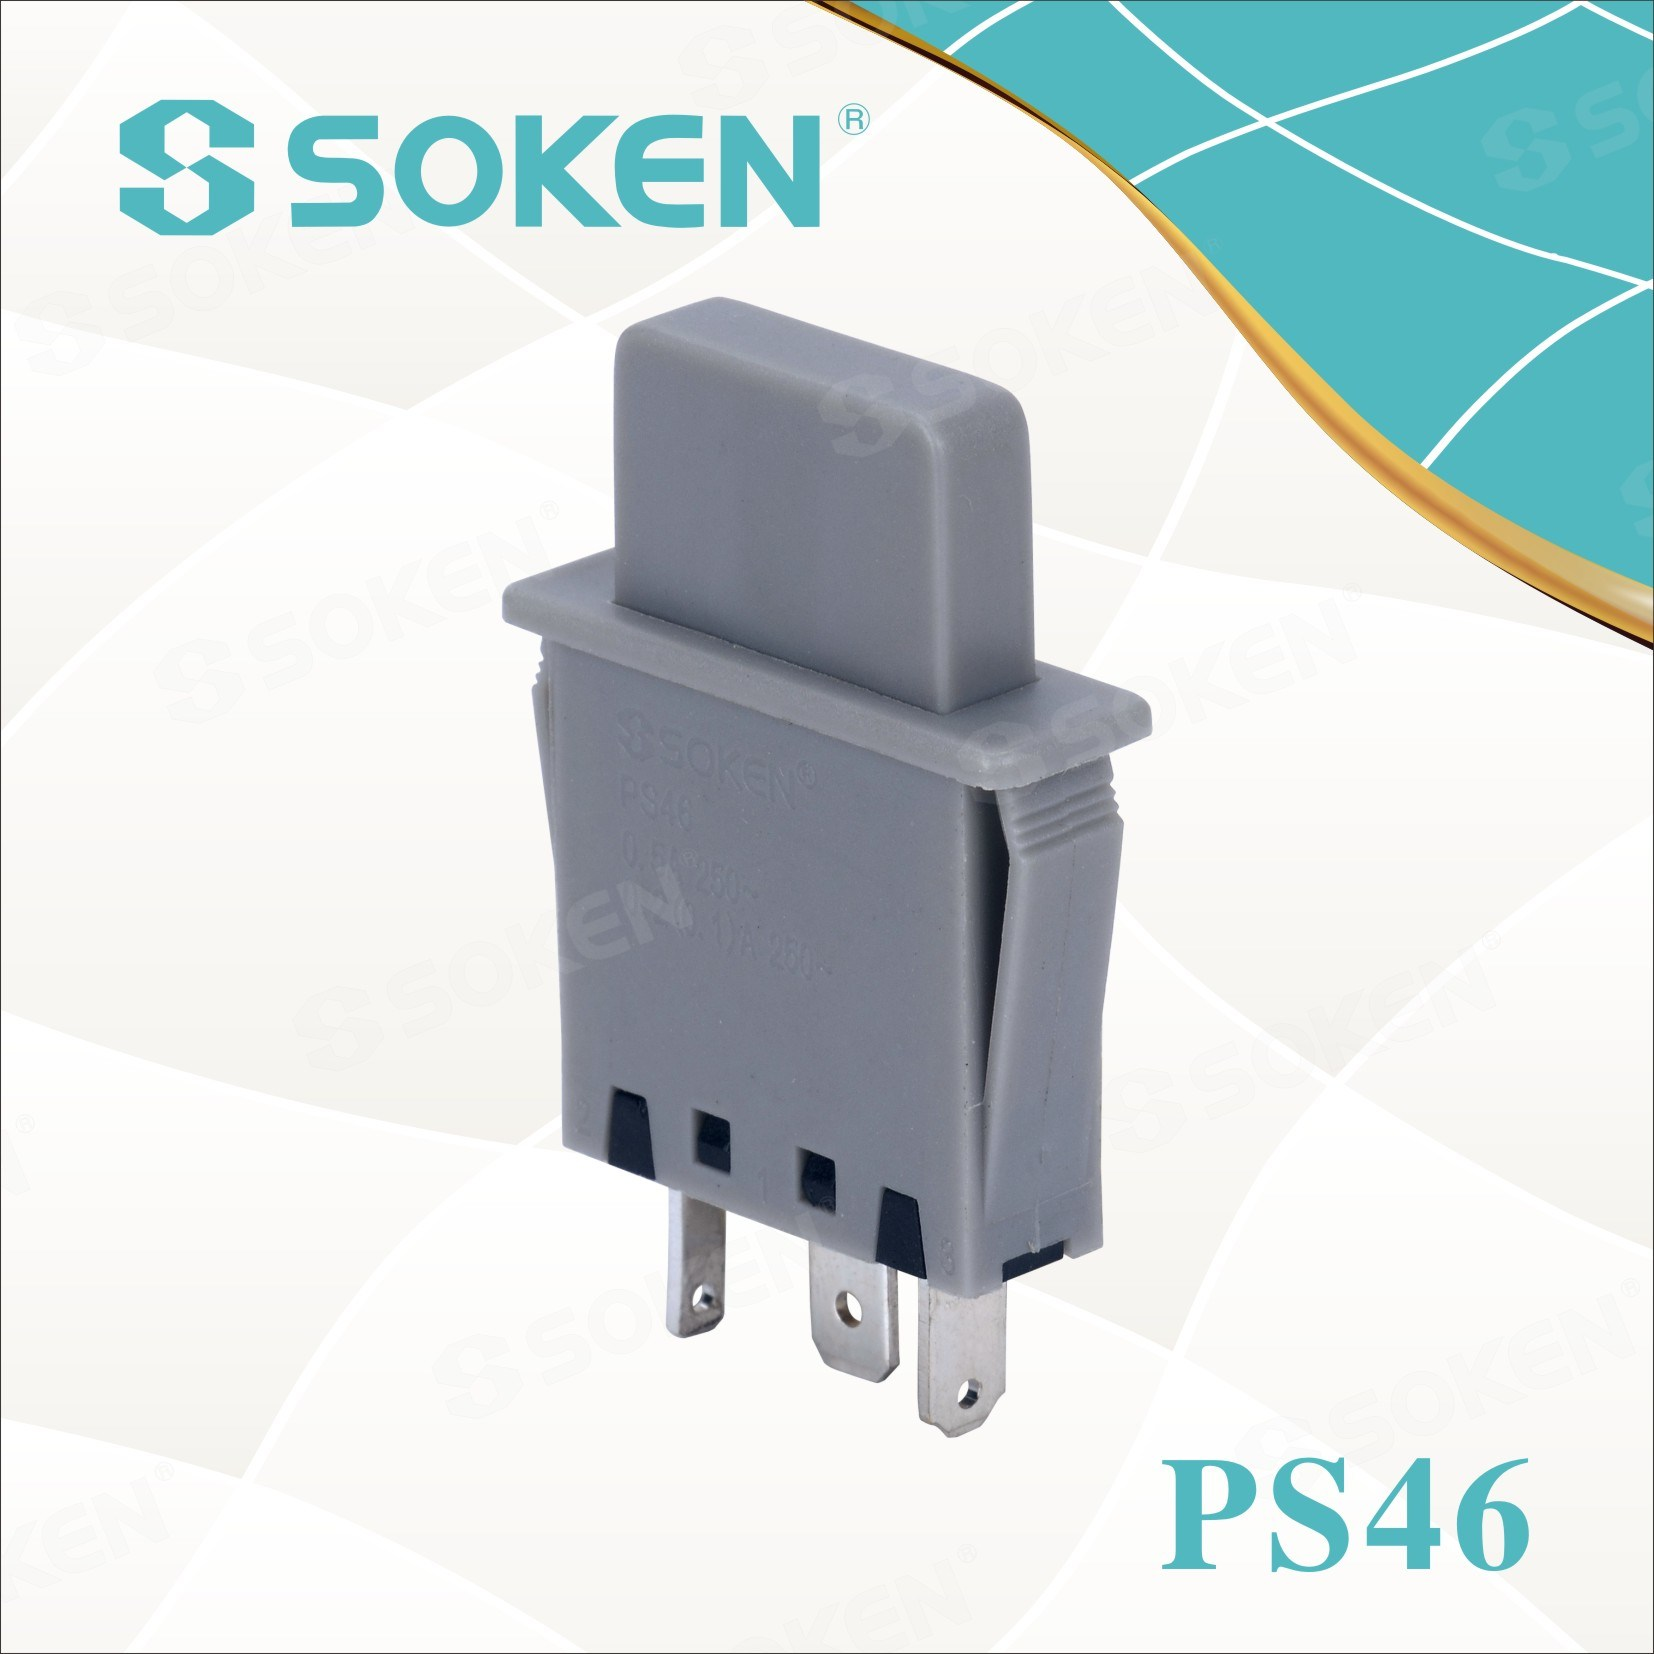 Soke Refrigerator Door Lamp Push Button Switch PS46 1 Pole